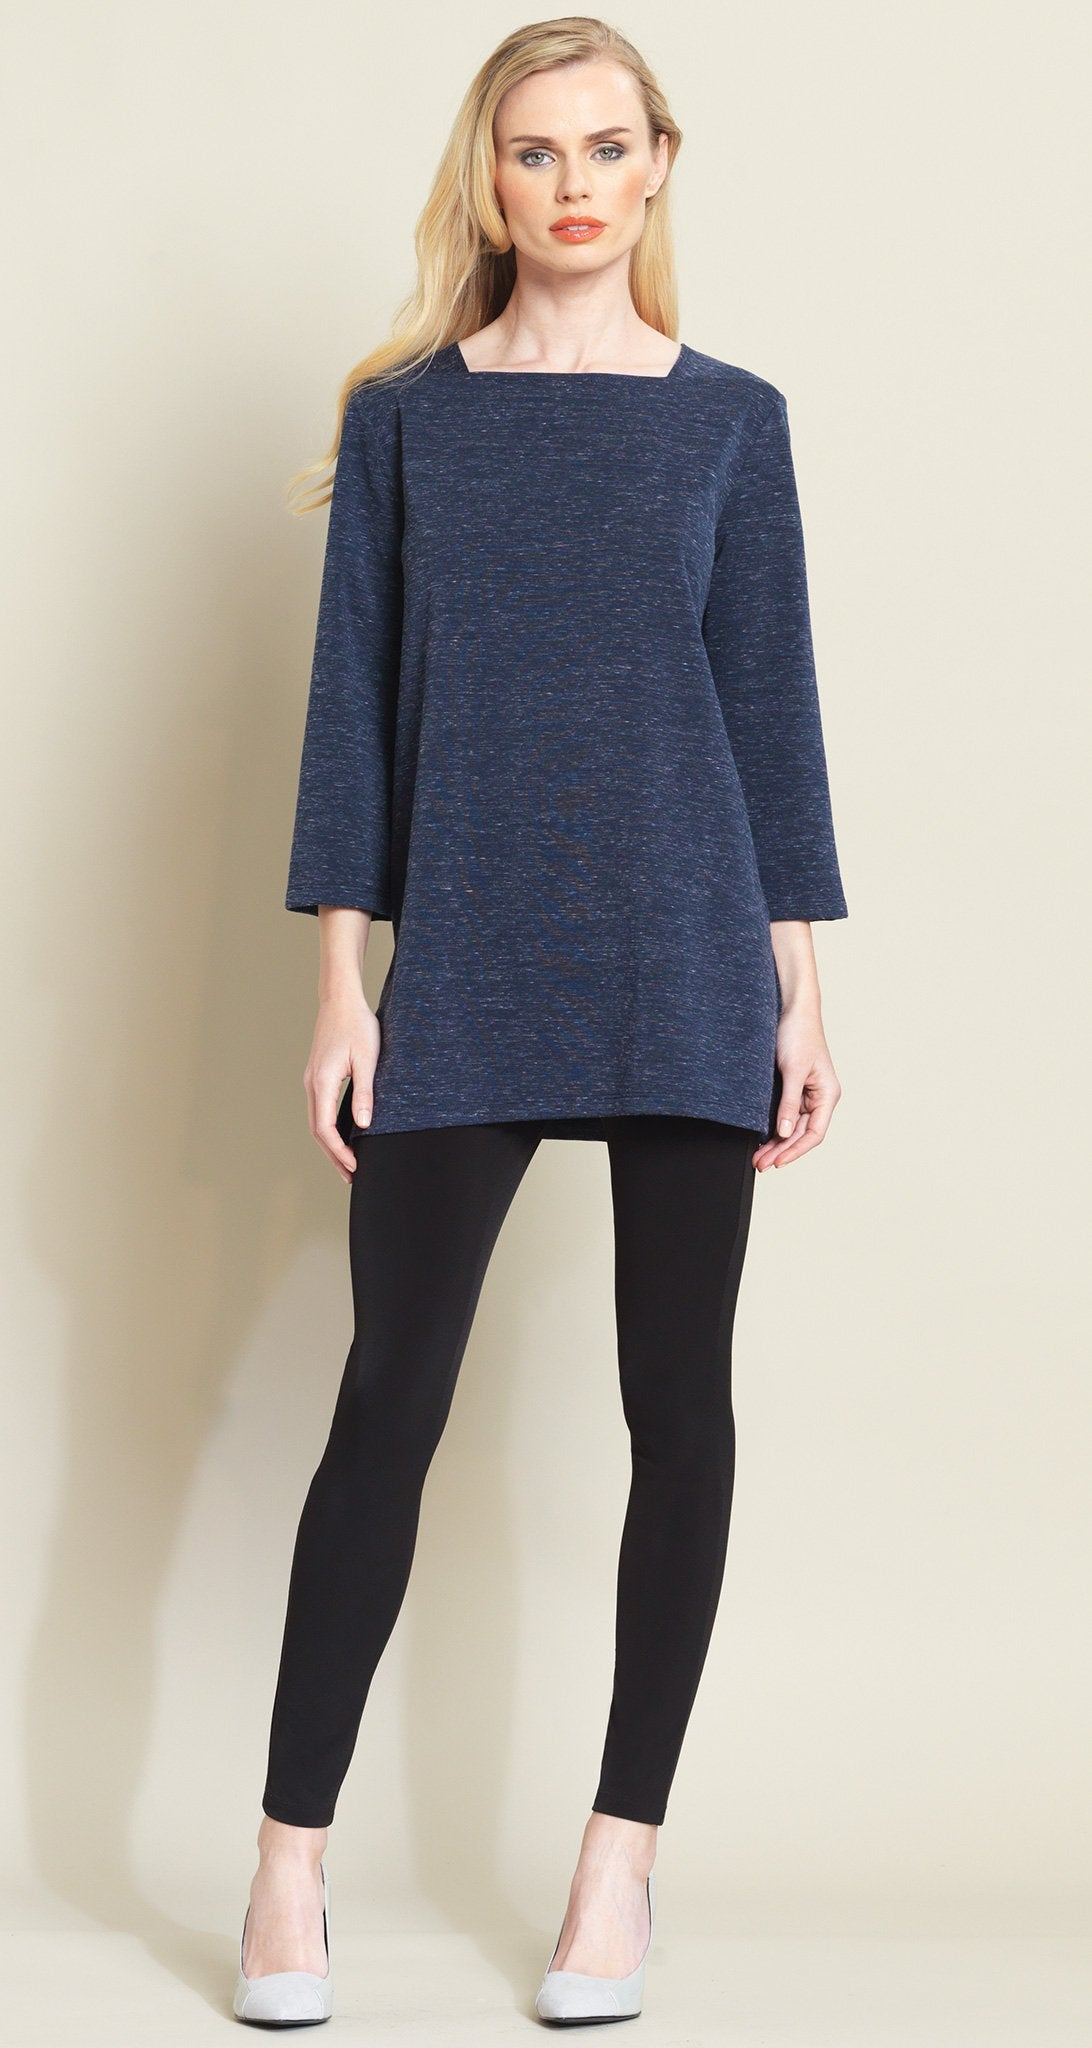 Heathered Square Neck Sweater Tunic - Navy - Size S & 1X Only! - Clara Sunwoo